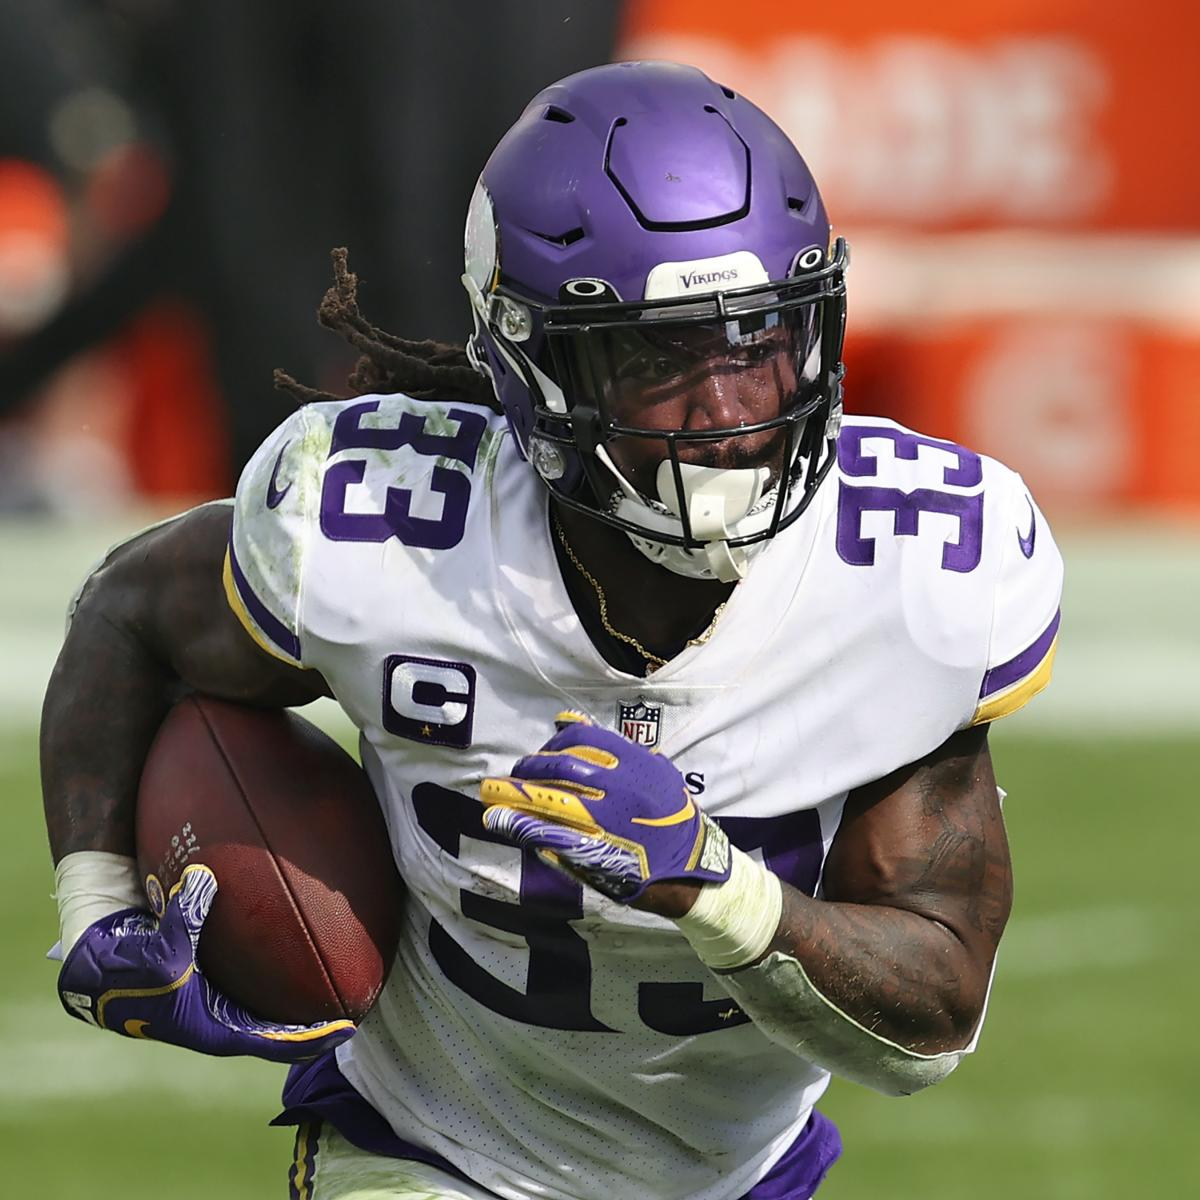 2021 Minnesota Vikings Schedule: Full Listing of Dates, Times and TV Info